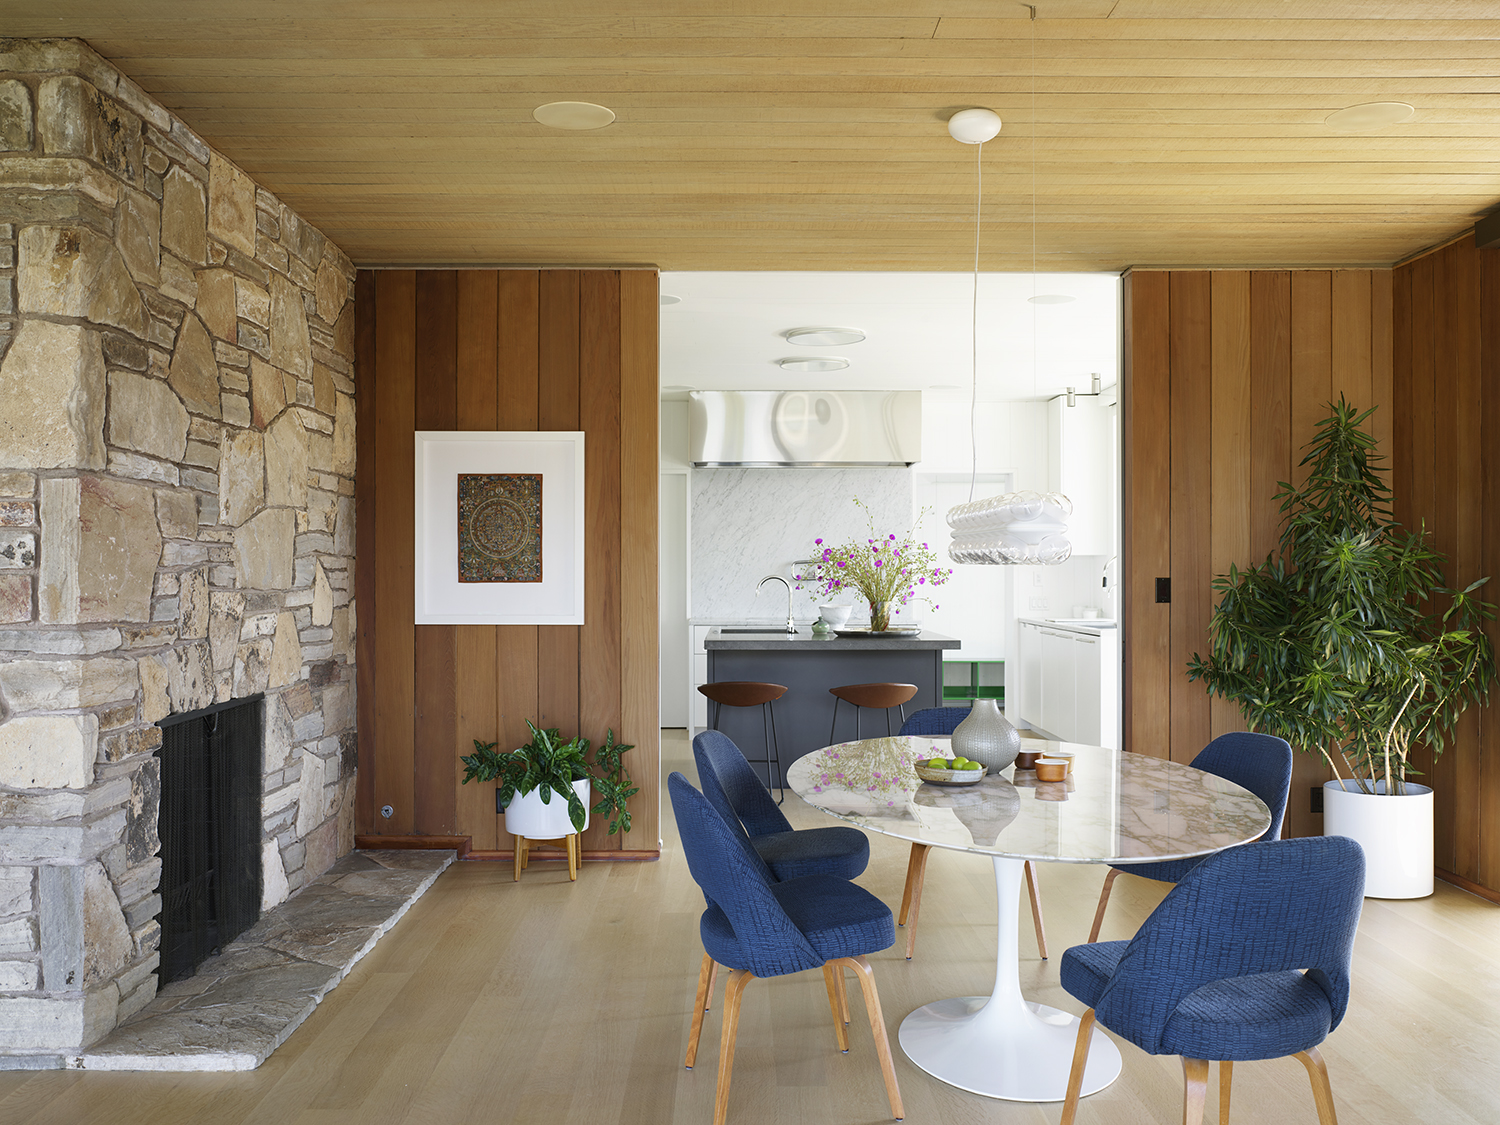 Herspring House renovated in Kentfield California, inside view of living space, marble round table with blue chairs, fireplace on the left, kitchen on the back.